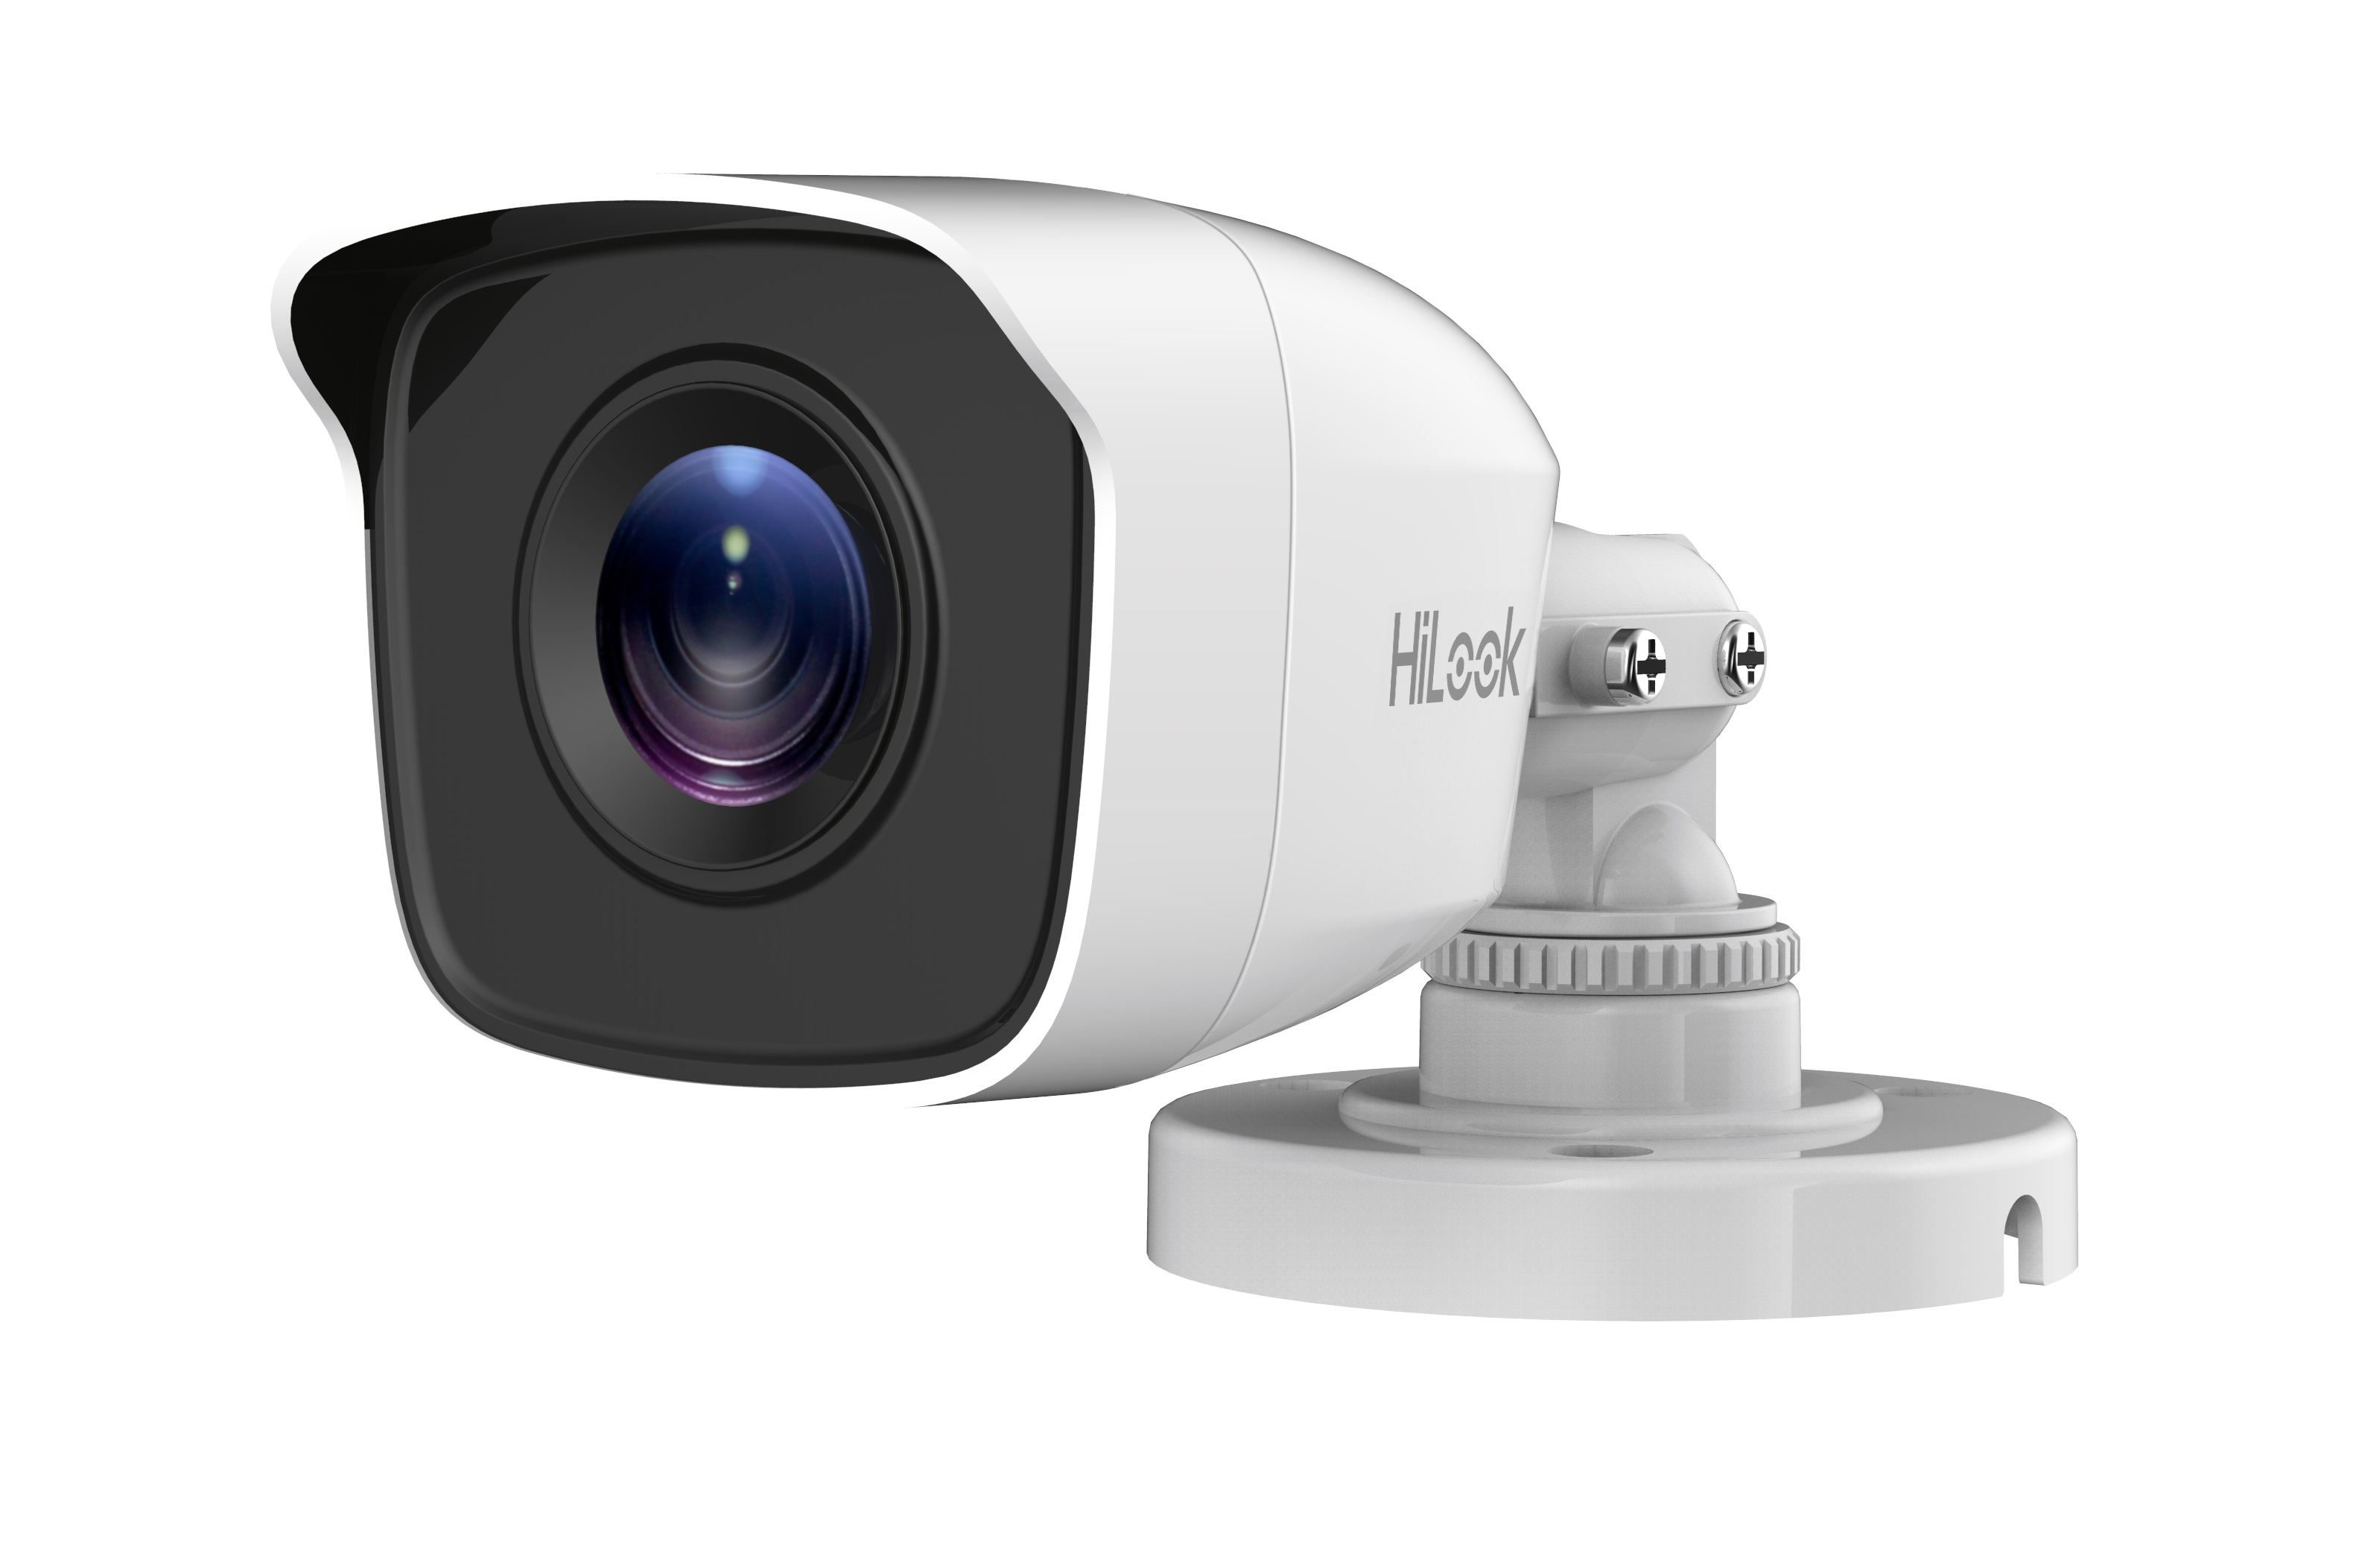 HiLook by Hikvision THC-B140-M 3.6mm 4mp EXIR 4-IN-1 Bullet CCTV Camera 20m IR IP66 Metal Body -White